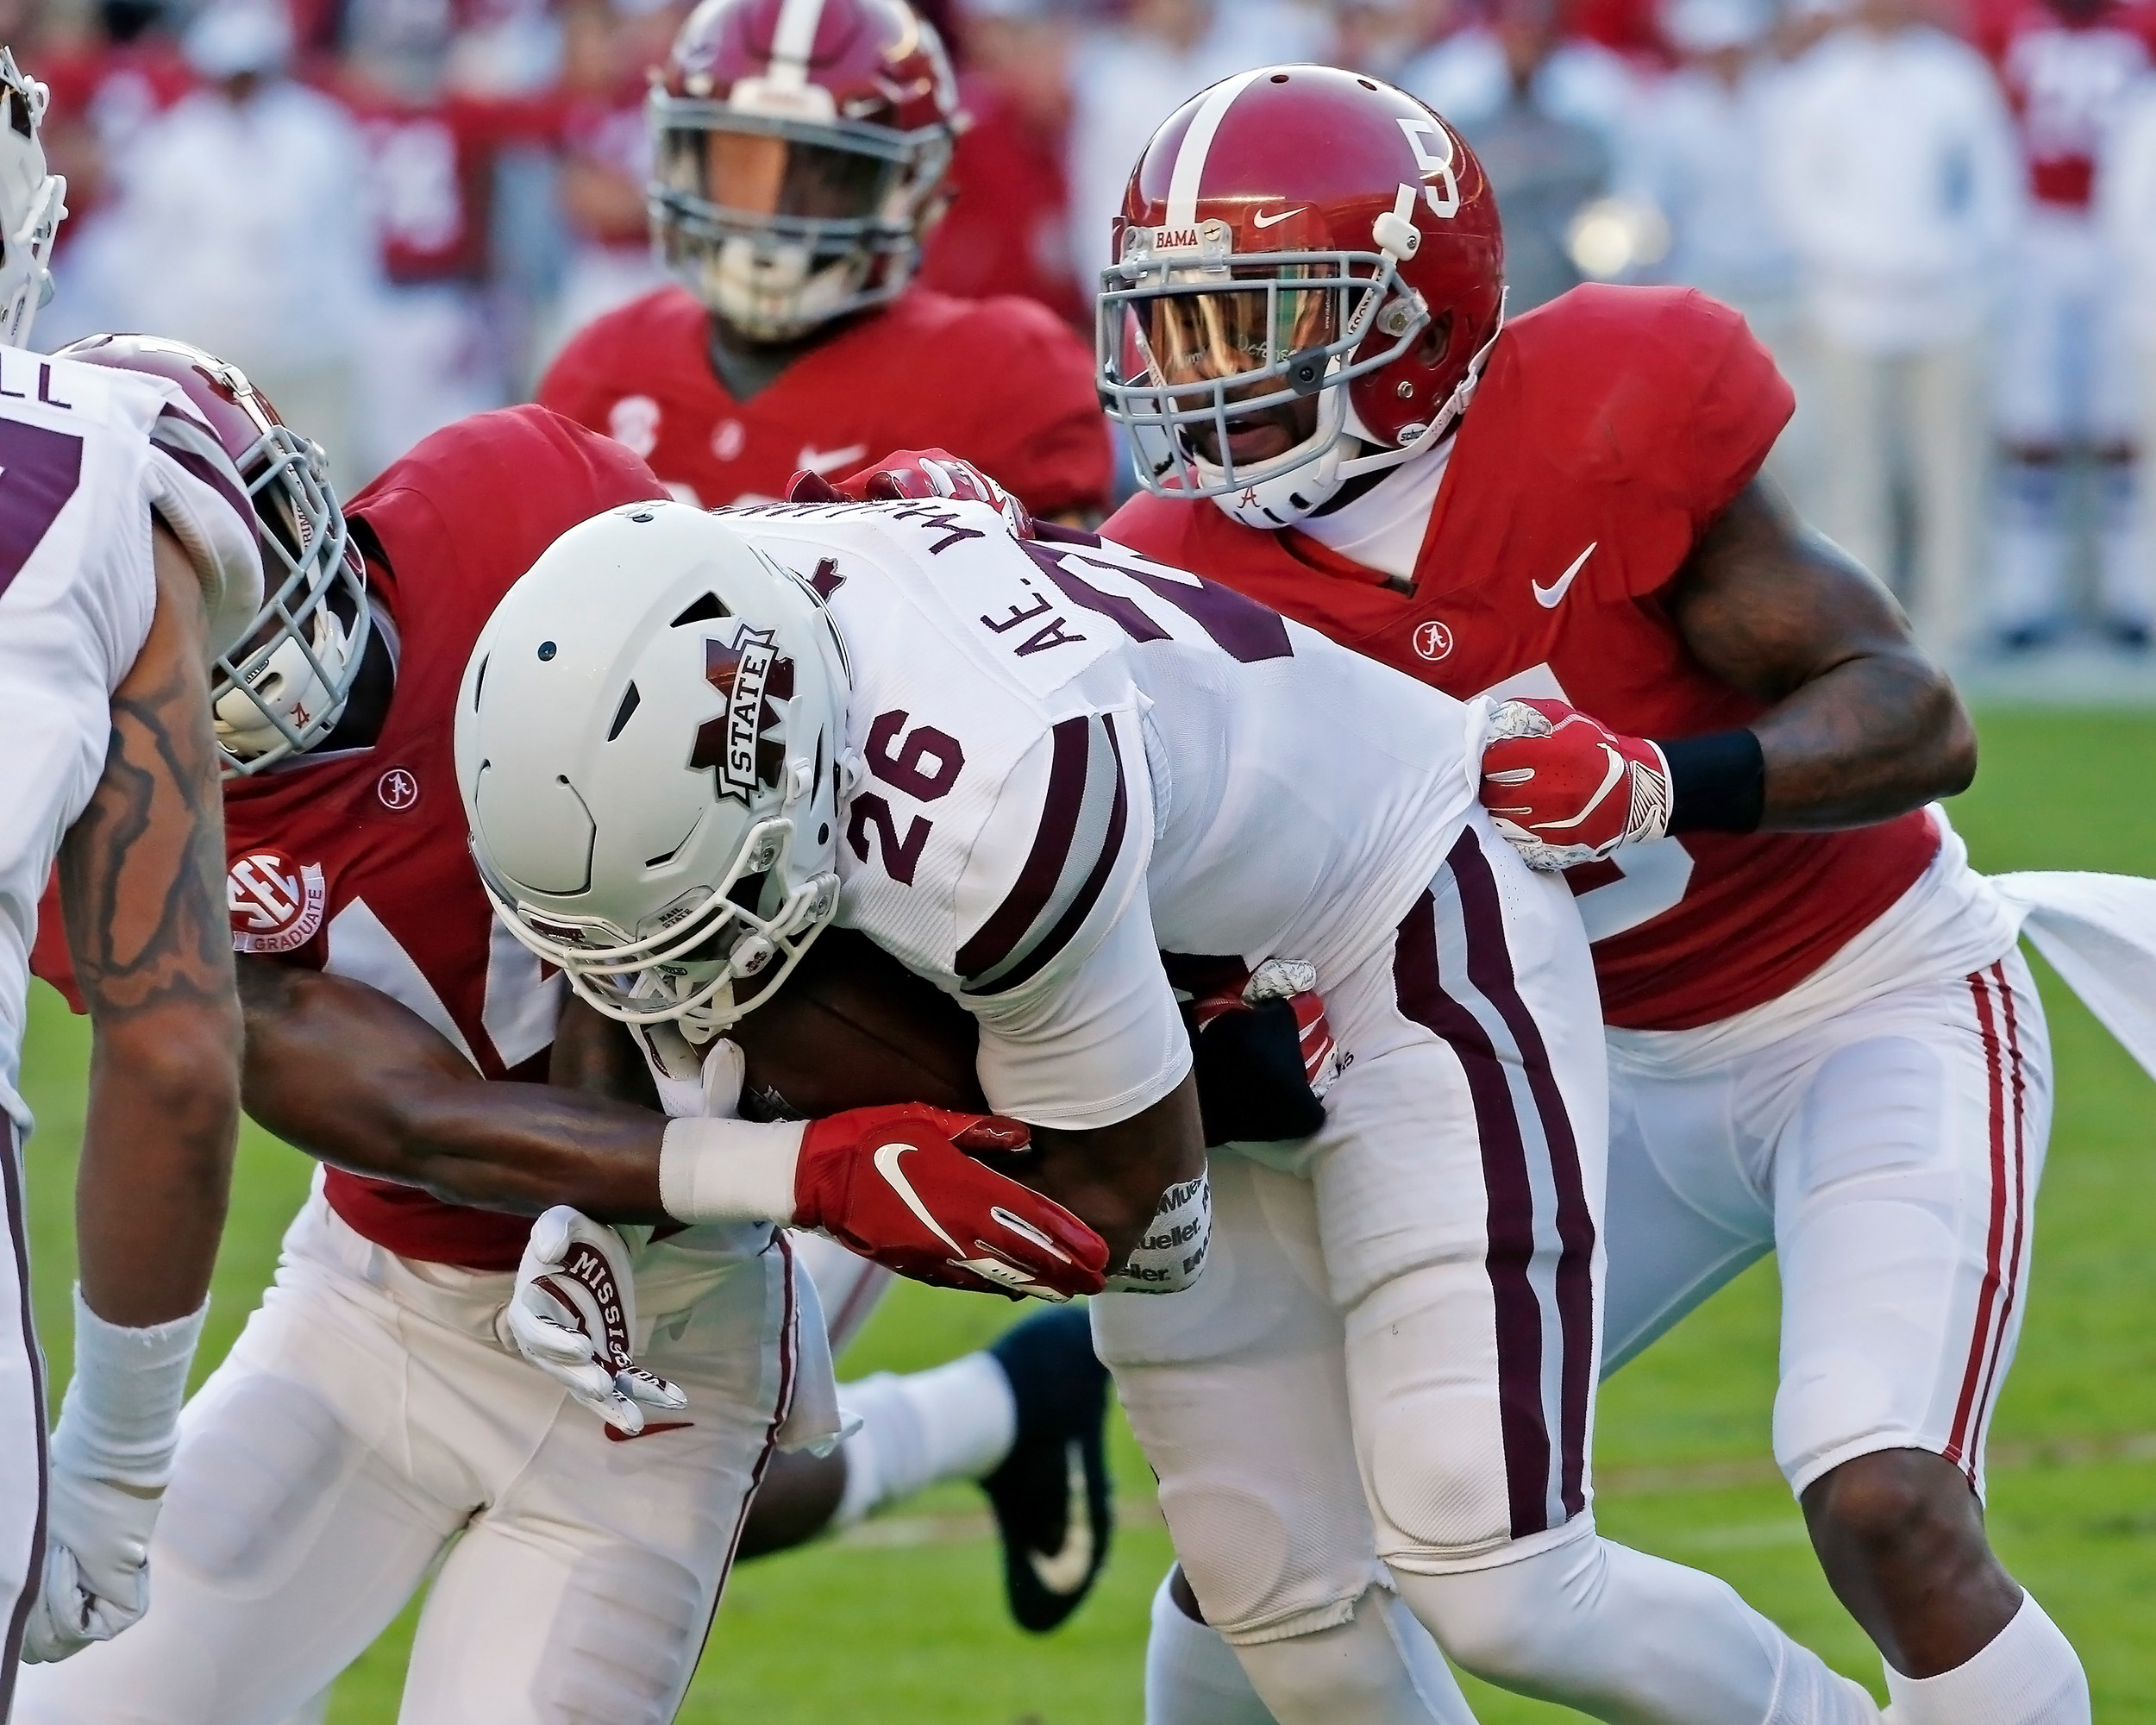 Mississippi State Bulldogs running back Aeris Williams (26) is wrapped up by Alabama Crimson Tide defensive backs Deionte Thompson (14) and  Shyheim Carter (5) during the game between Mississippi State and the University of Alabama at Bryant-Denny Stadium in Tuscaloosa, Al. Credit: Jason Clark / Daily Mountain Eagle